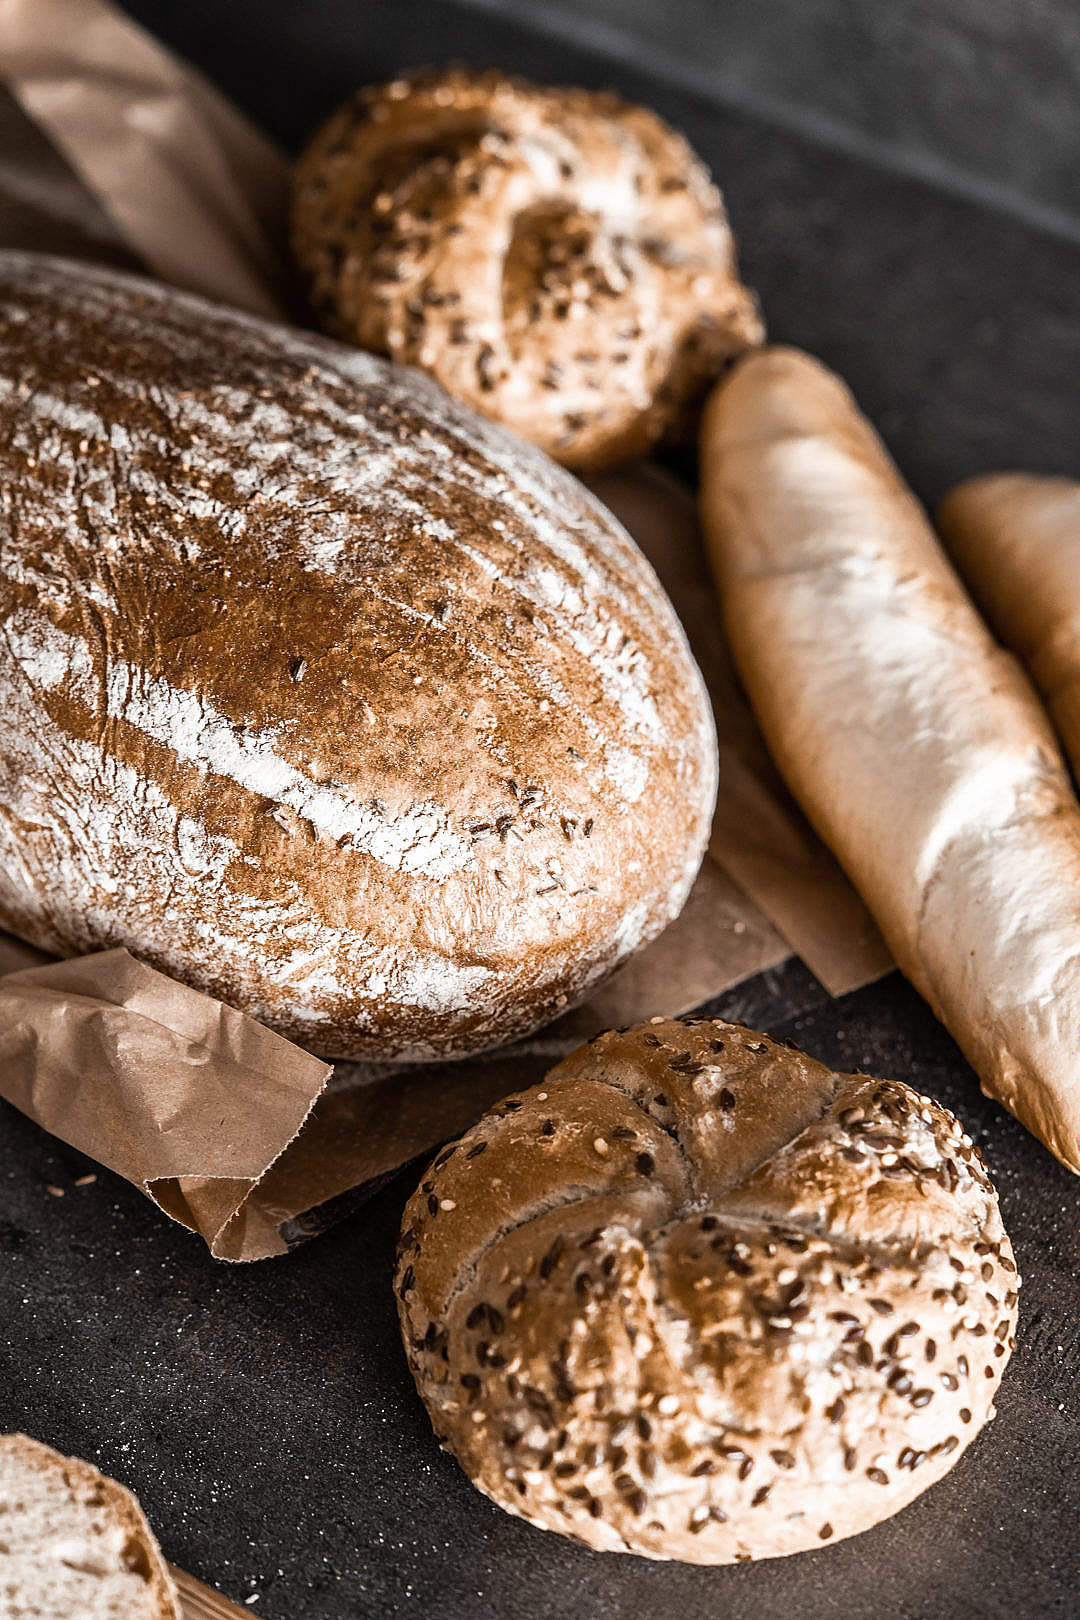 Download Bread and Other Baked Goods FREE Stock Photo